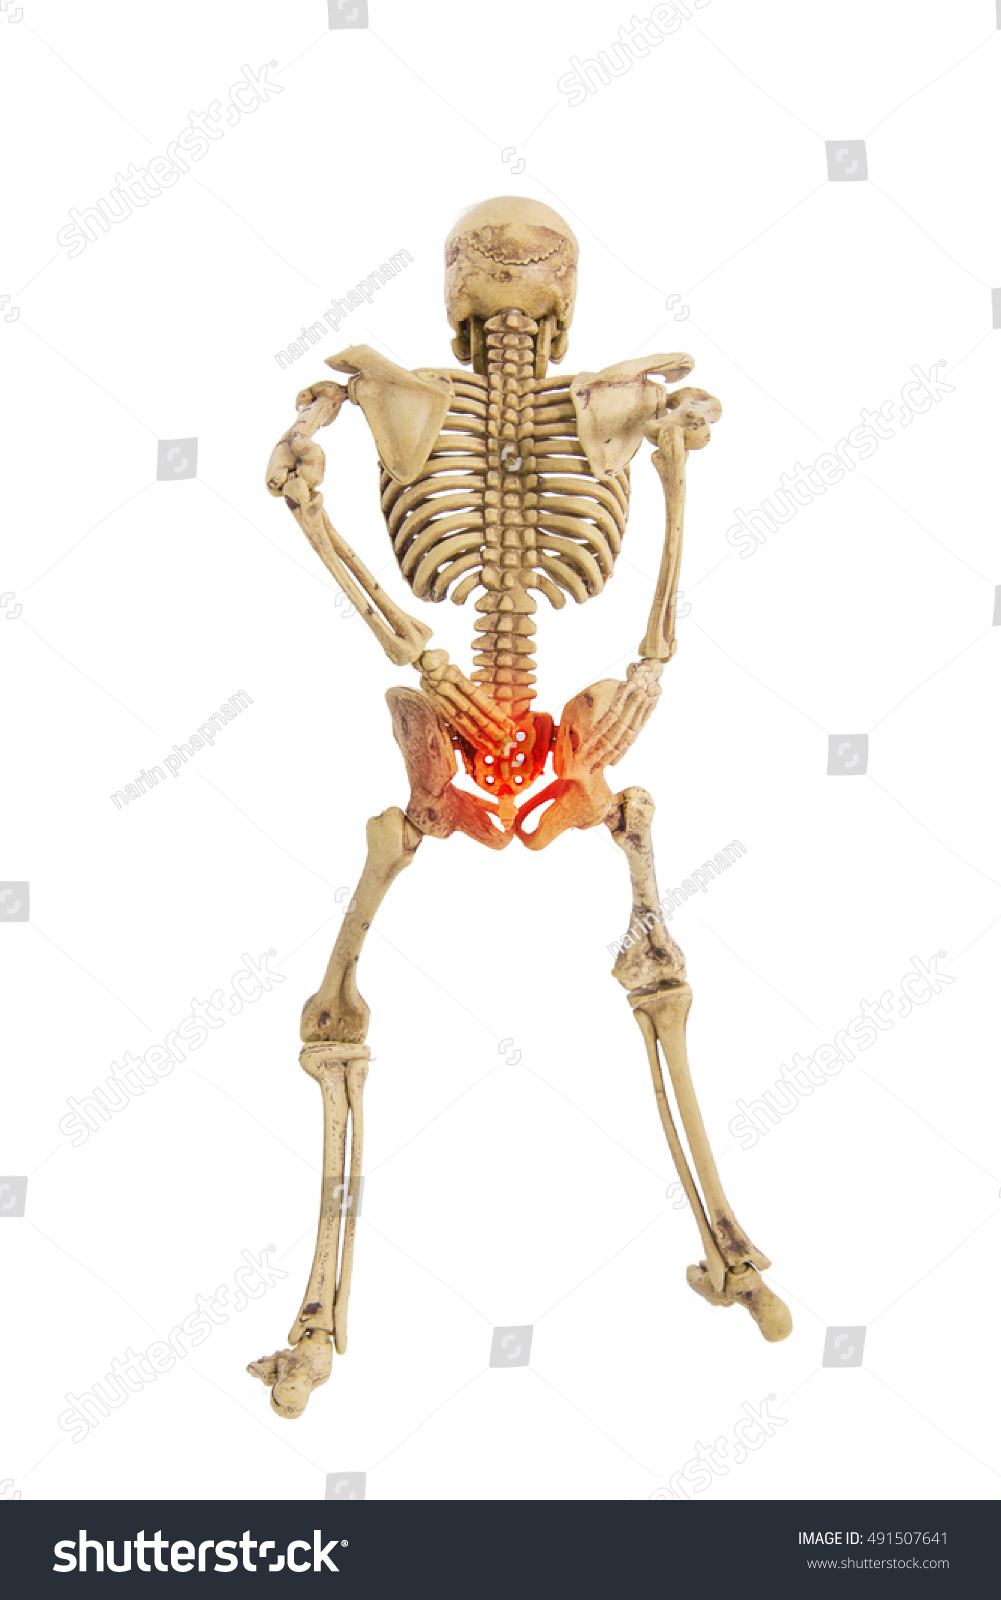 Anatomy Skeleton Human Symtom Low Back Stock Photo (Edit Now ...